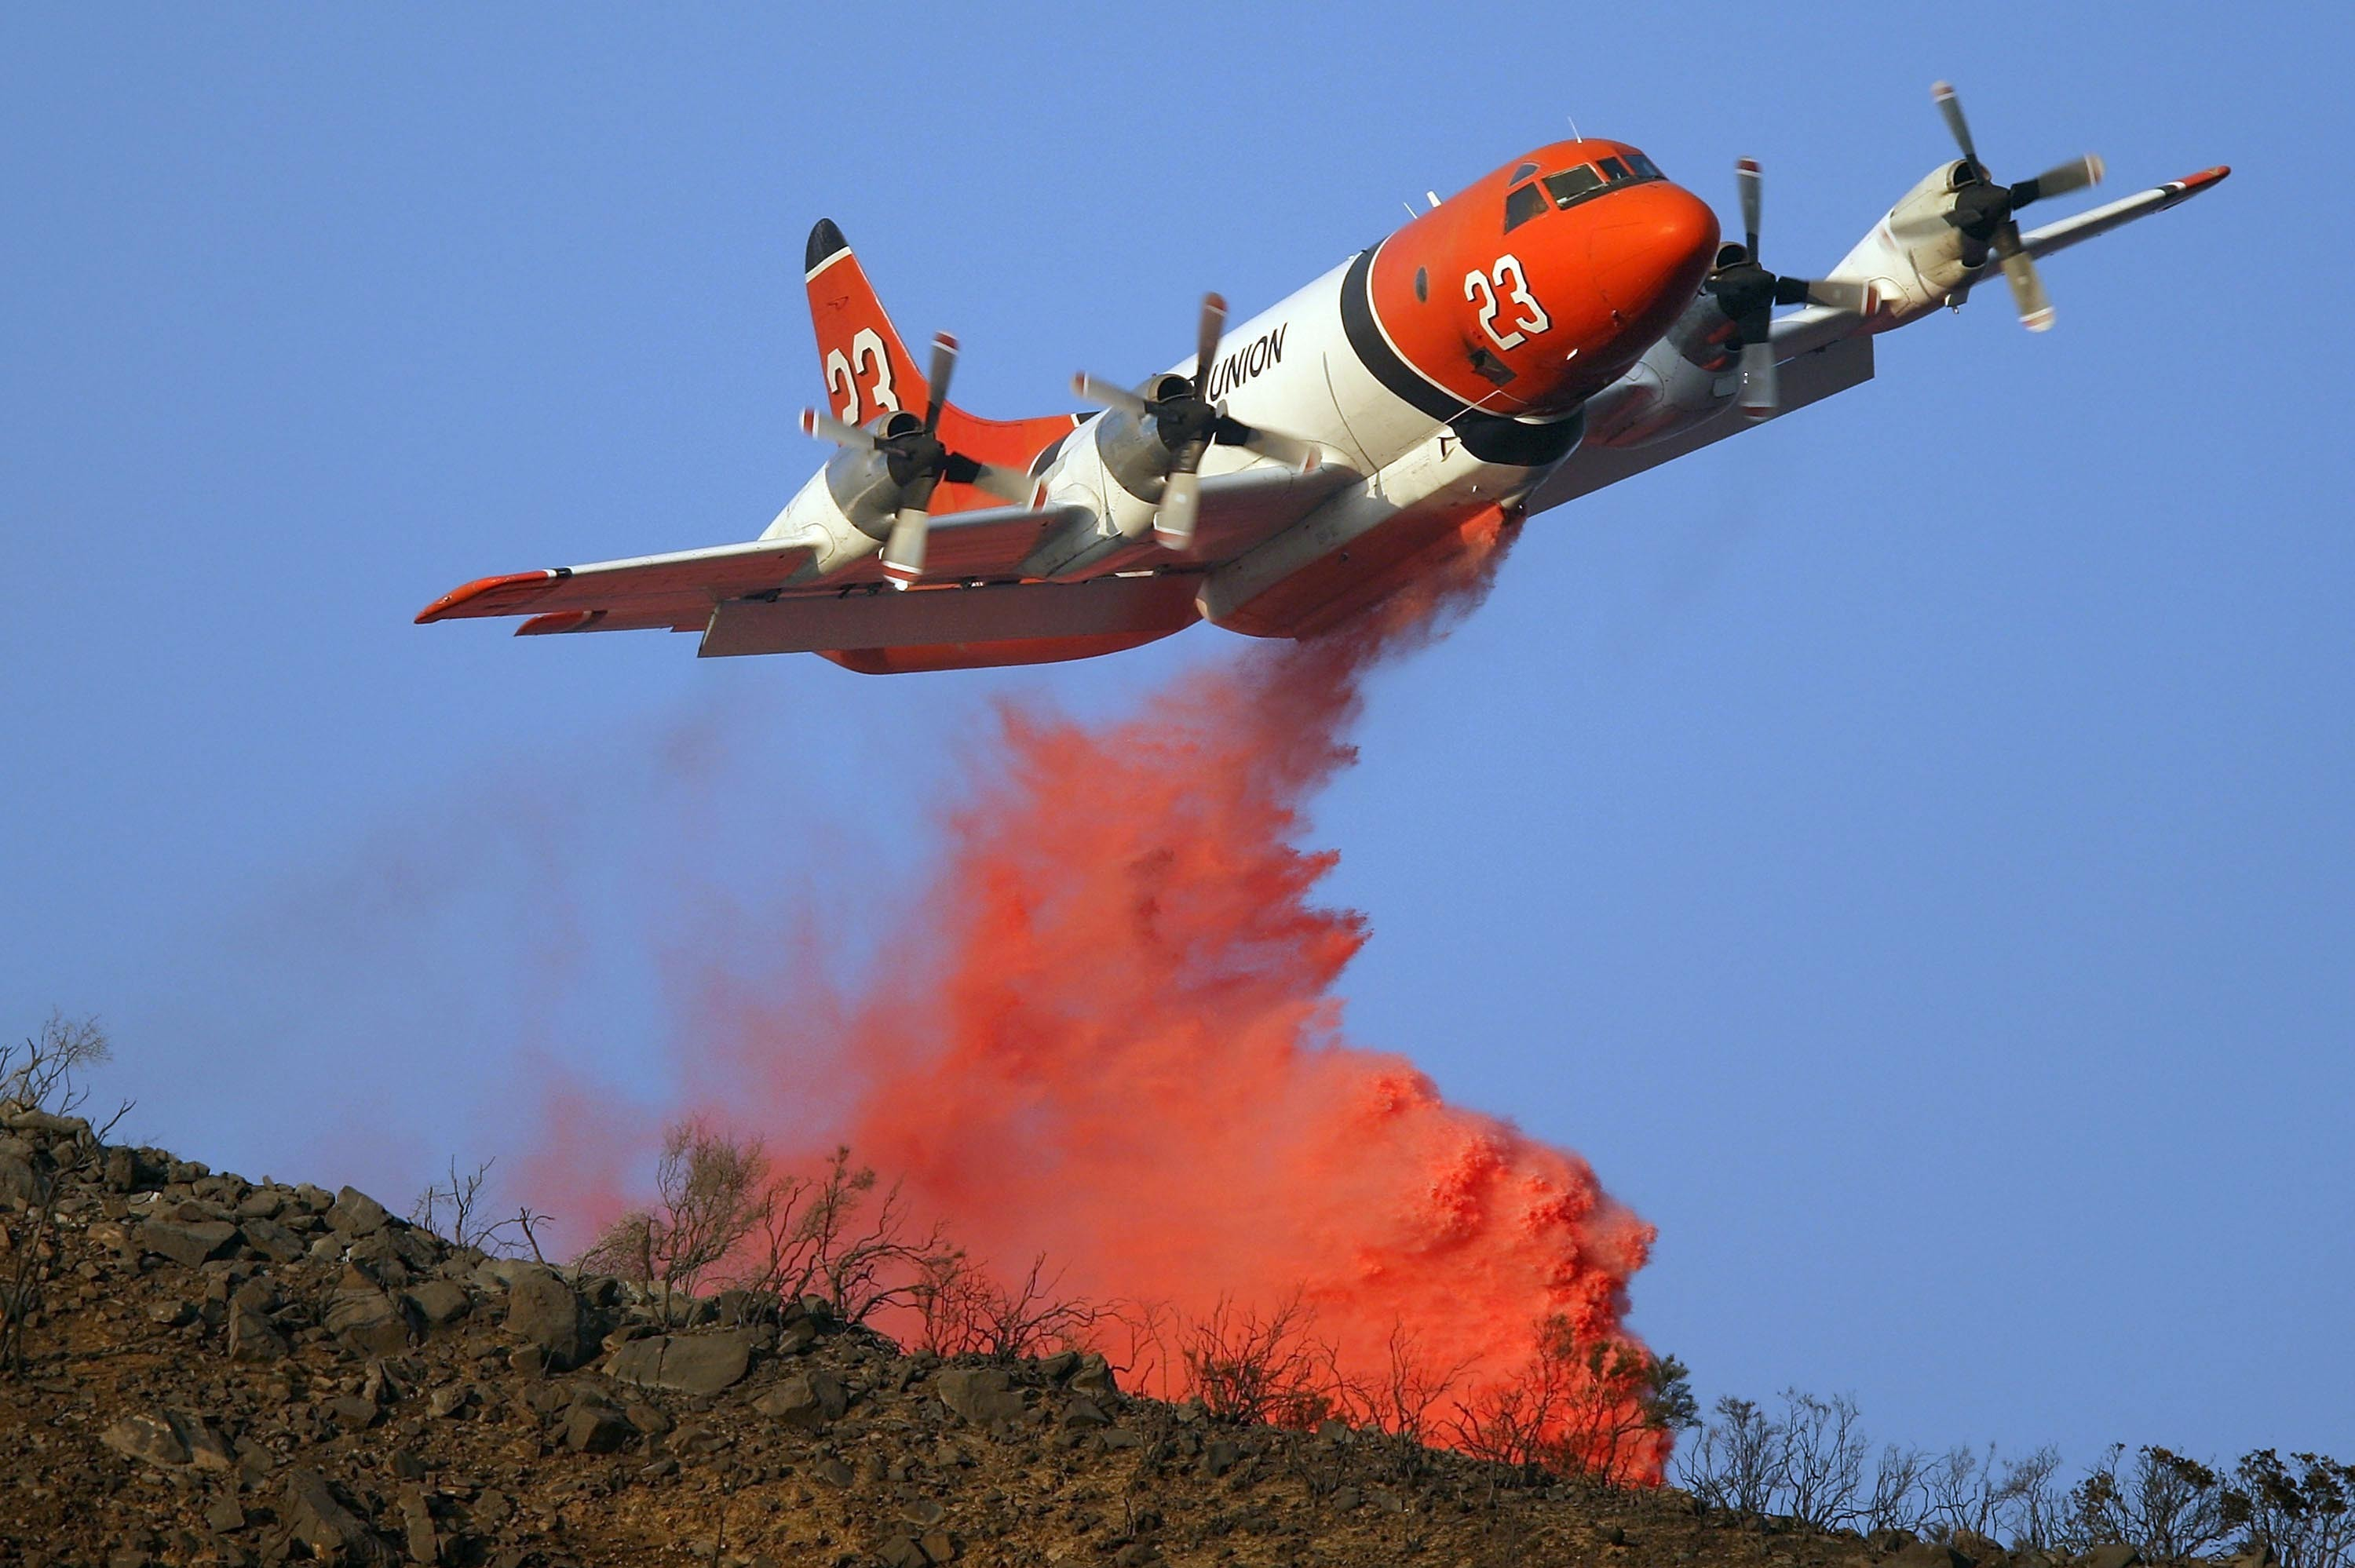 Battle wildfires and old age kplu news for seattle and the northwest